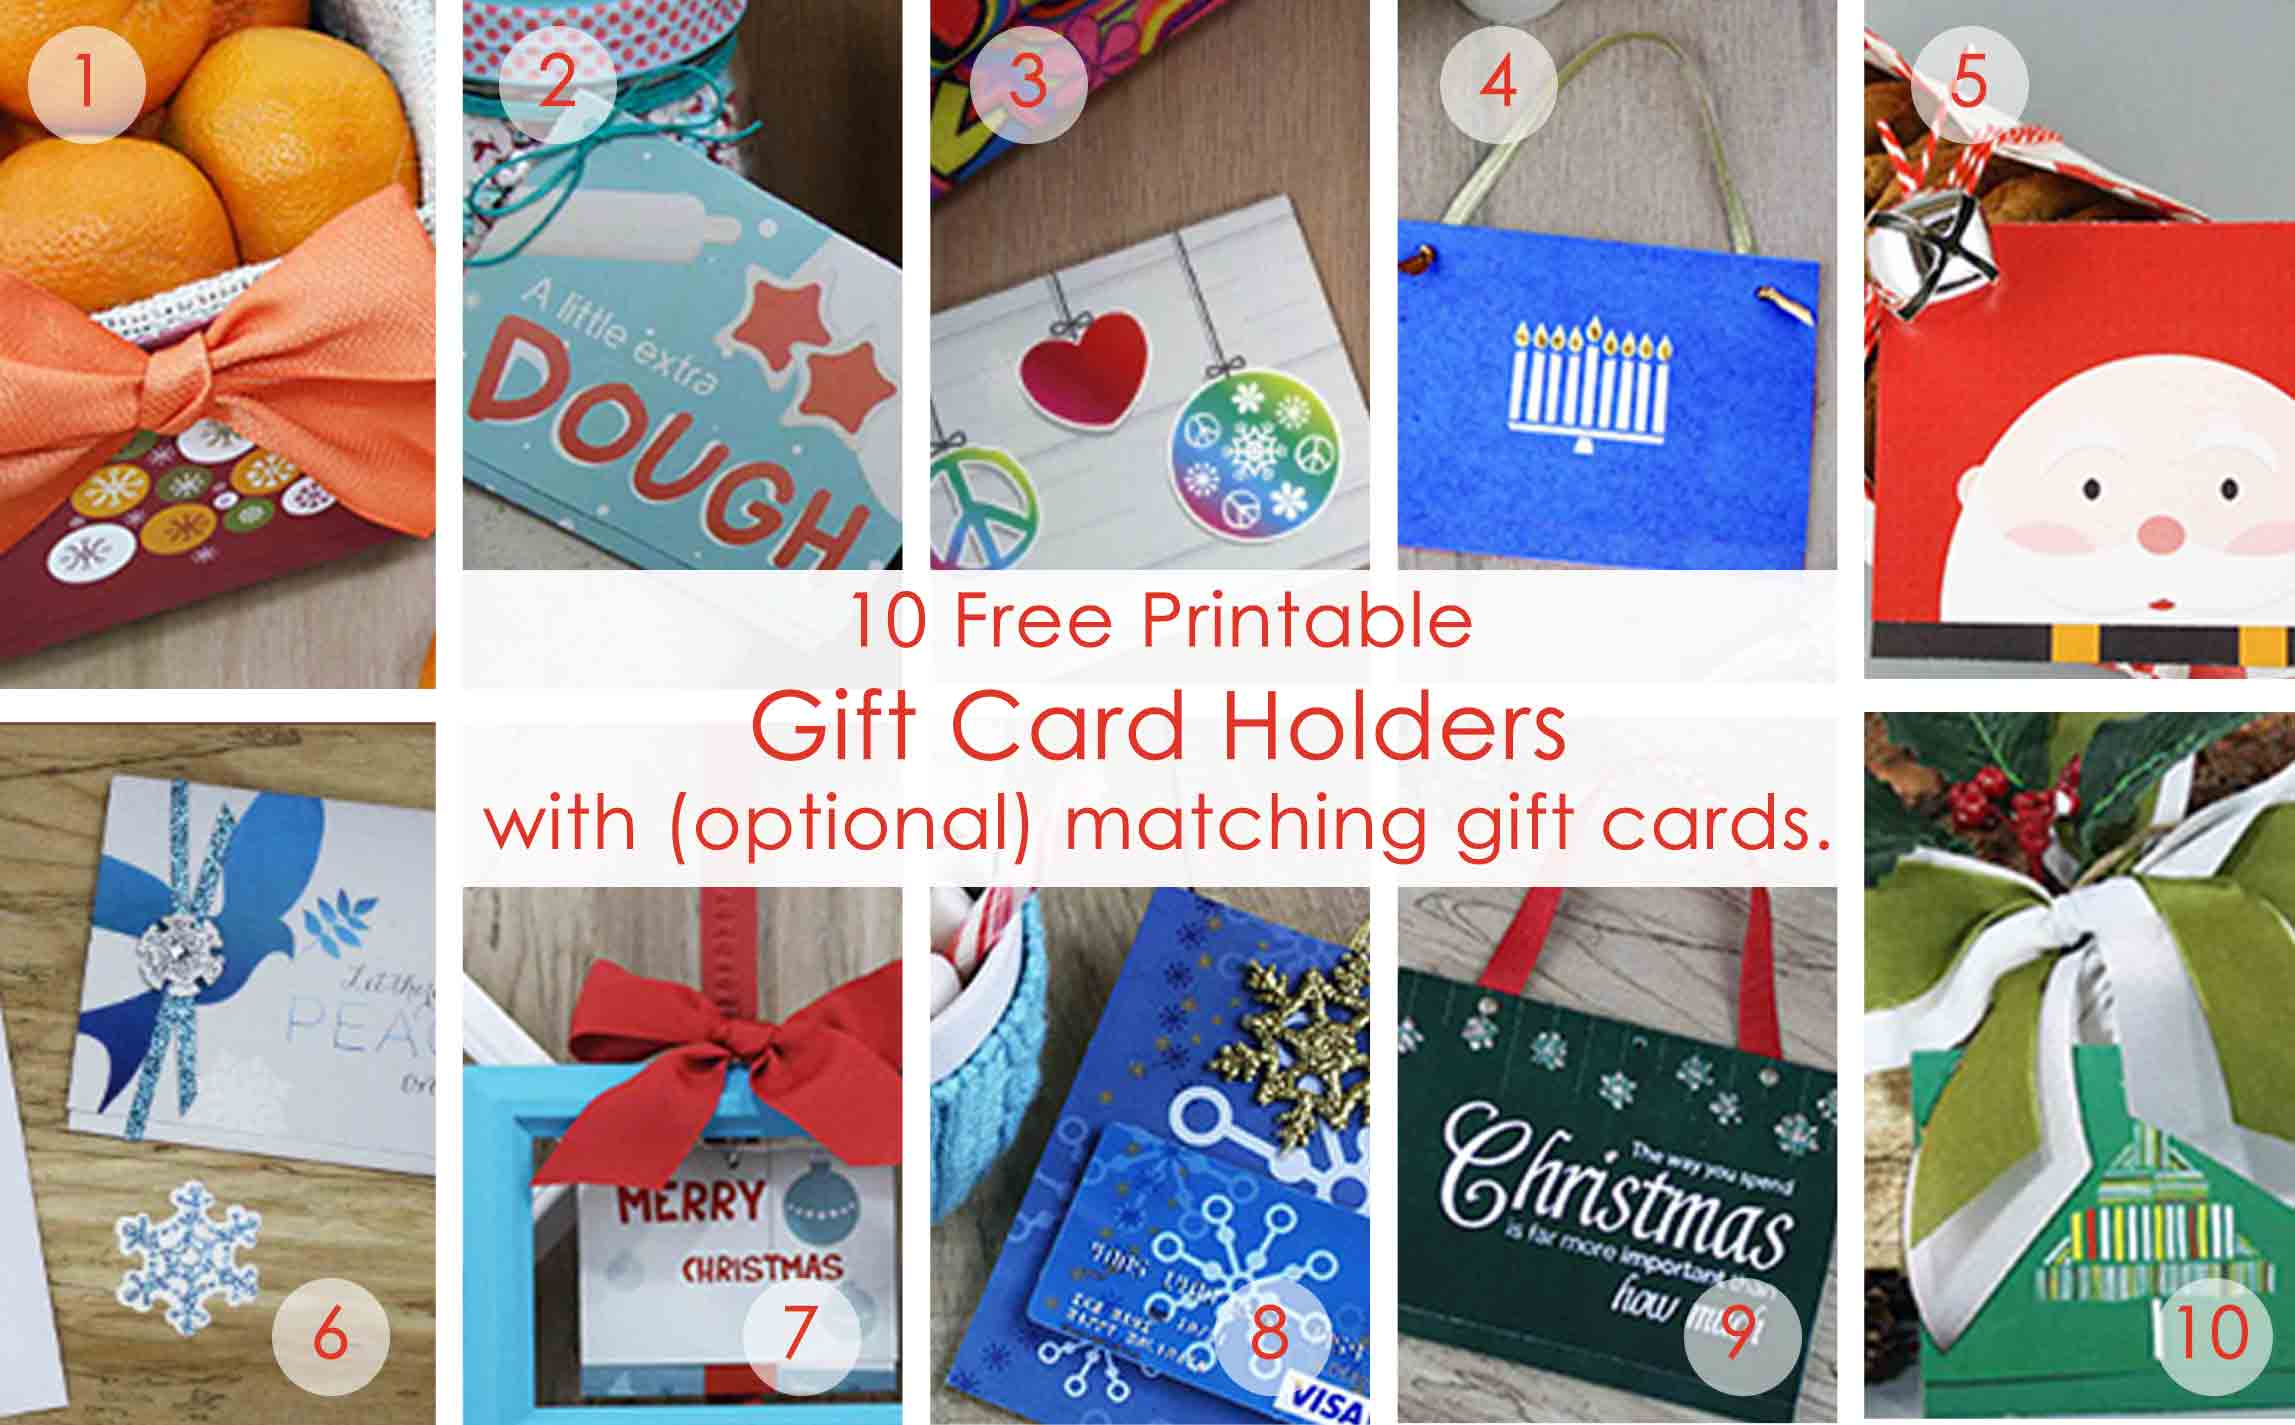 Over 50 Printable Gift Card Holders For The Holidays | Gcg - Free Printable Gift Card Envelope Template